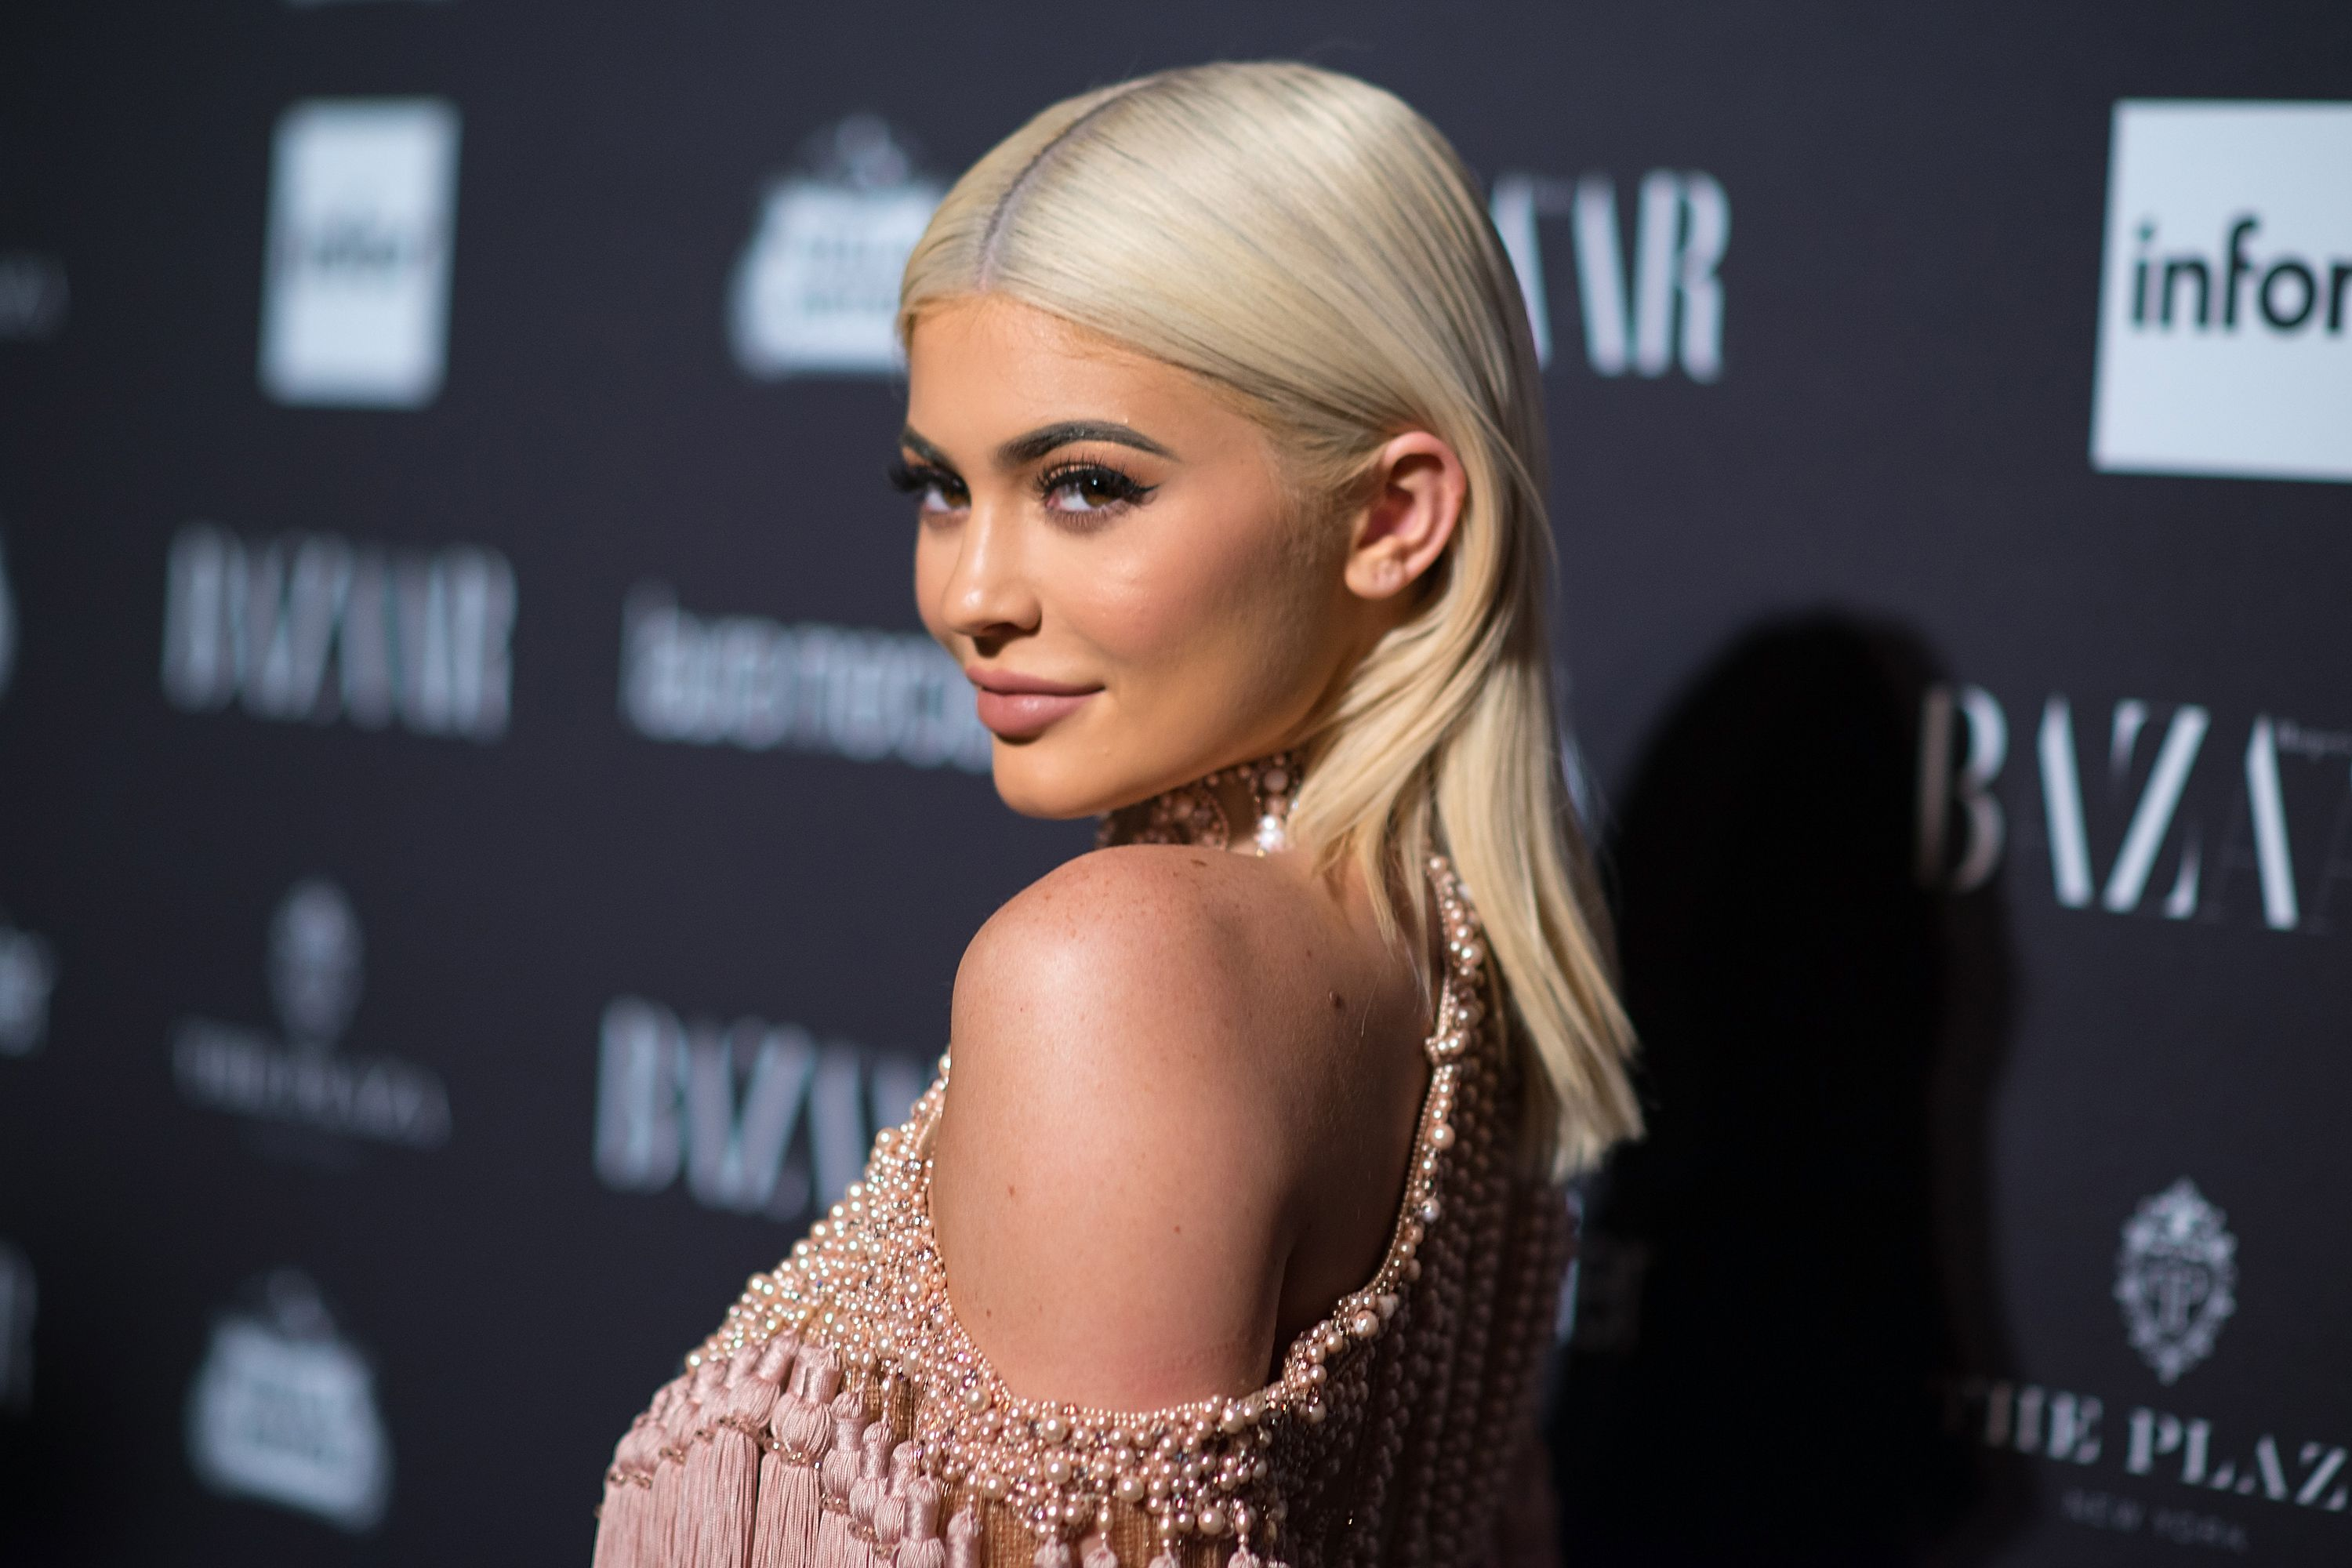 a968db9a815a6 All of the Ways Kylie Jenner Kept Her Pregnancy a Secret - 10 Times ...